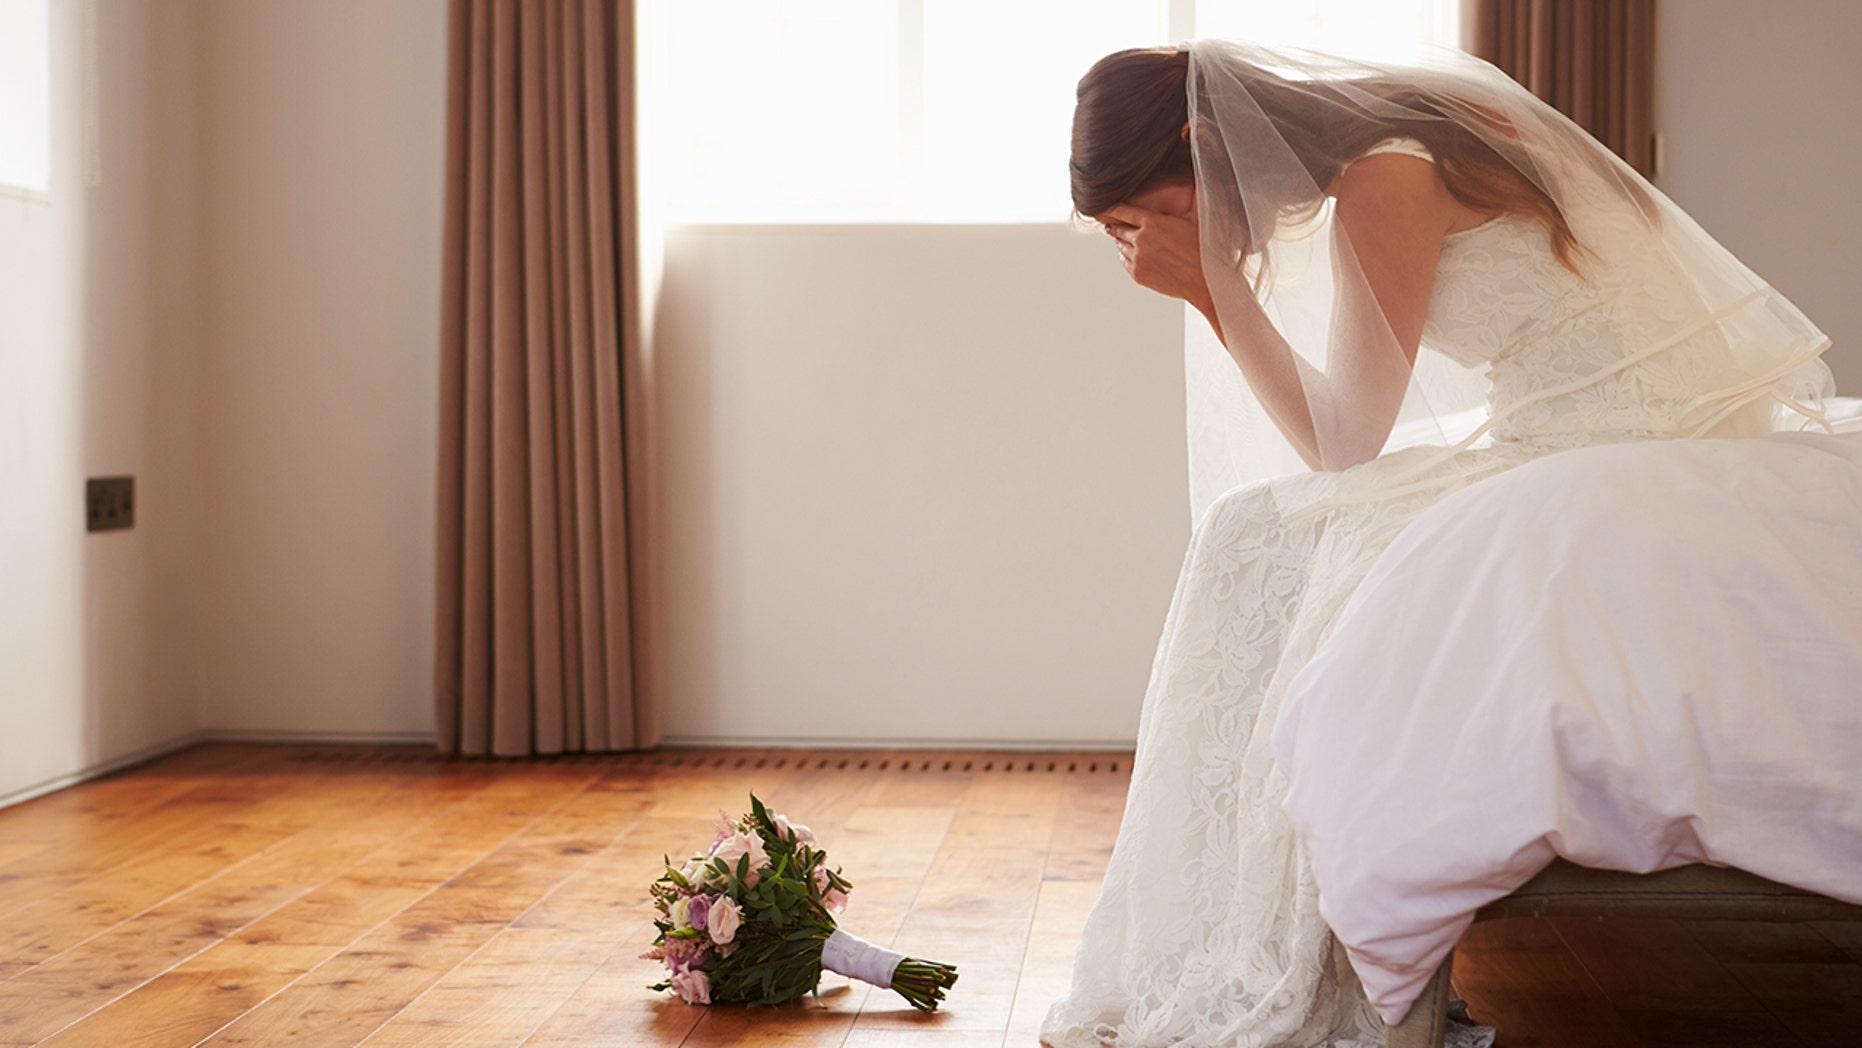 Wedding Planner Calls Out Bride S Disaster Of A Wedding After